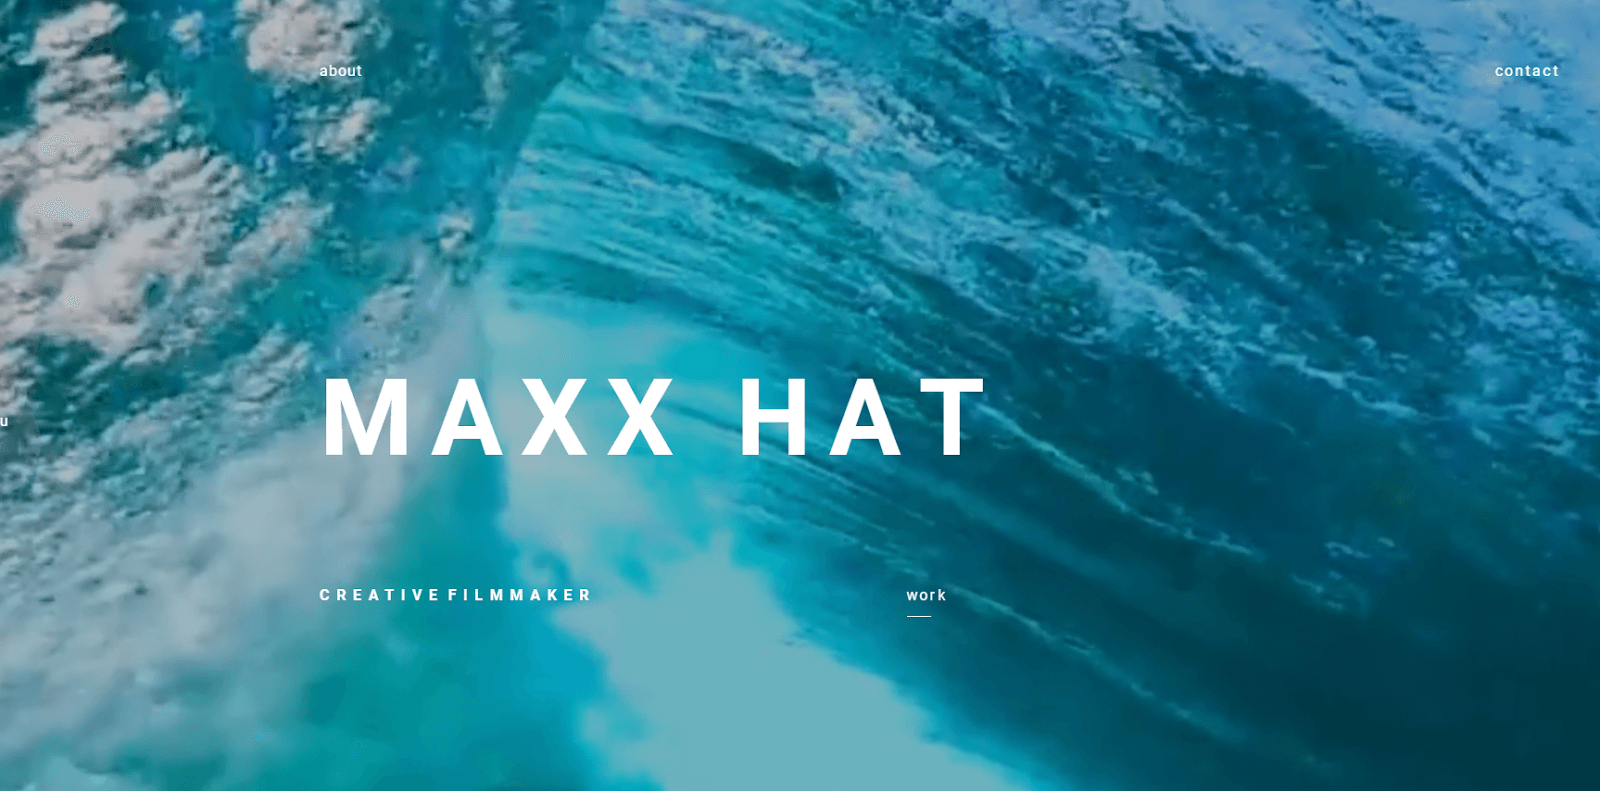 maxx hat Site